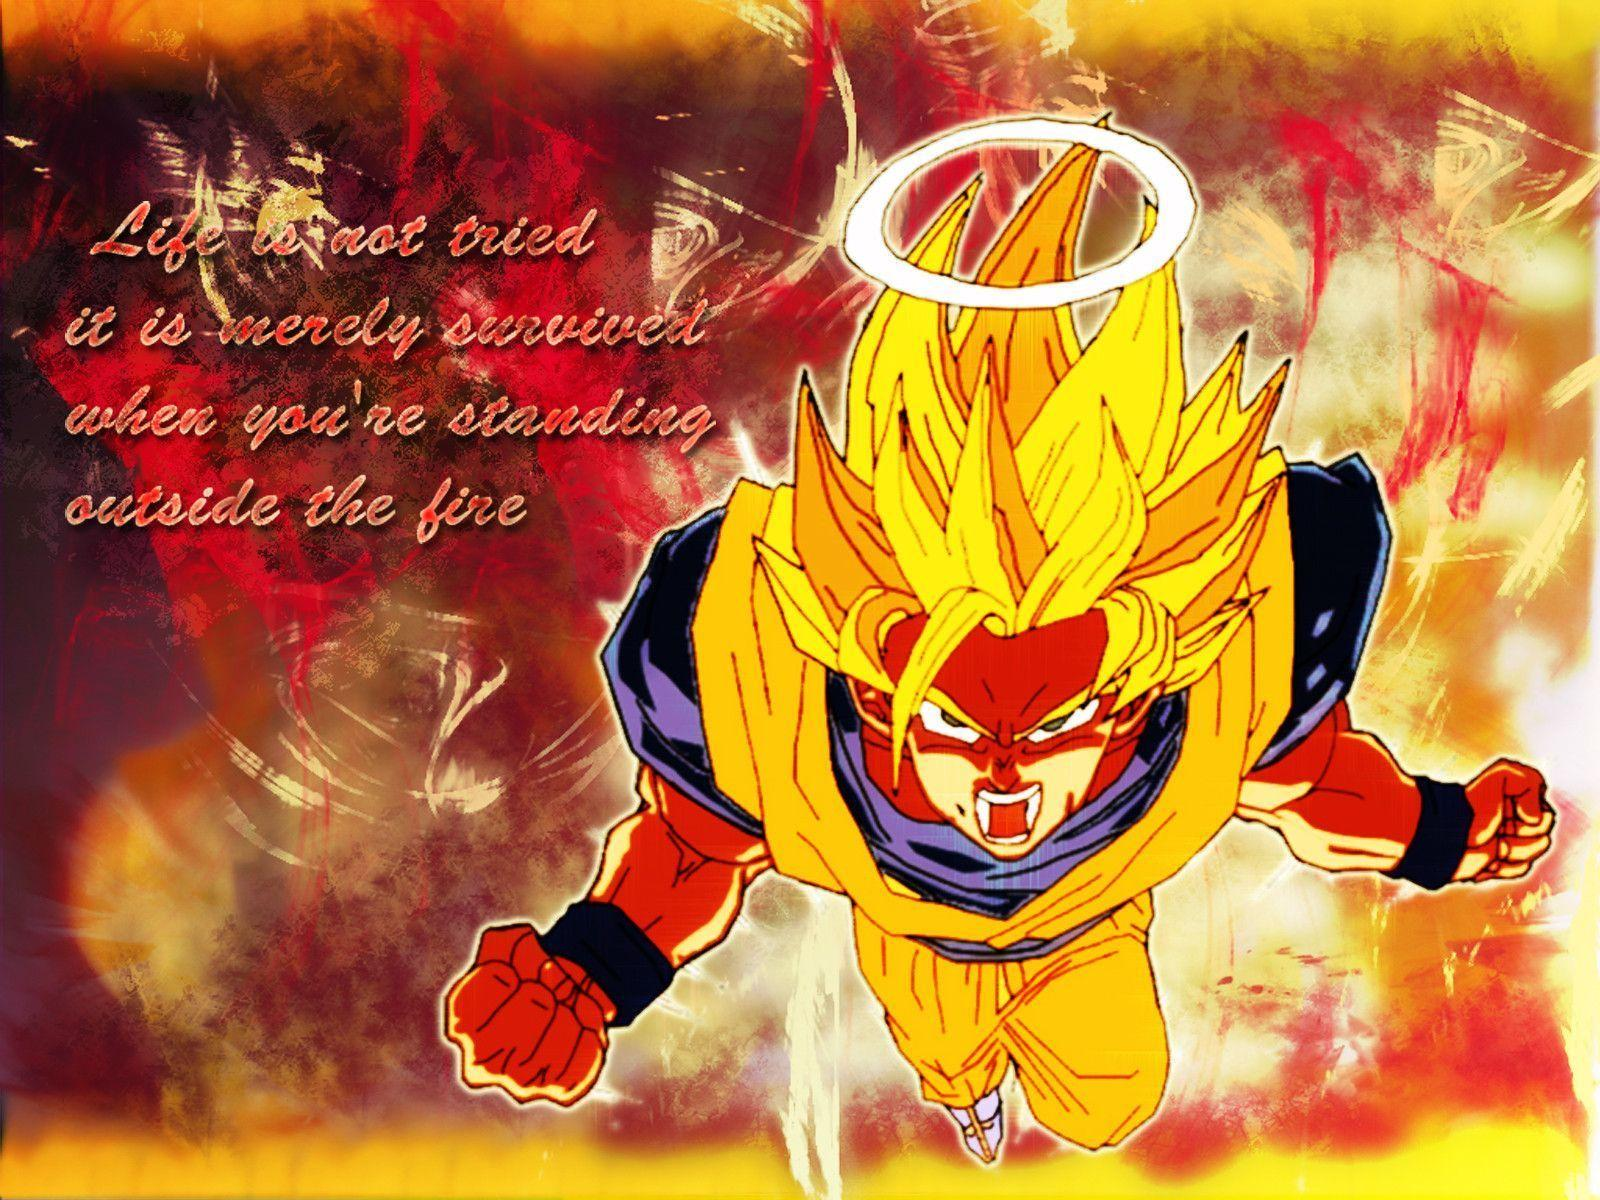 Cool Dragon Ball Z Wallpapers - Wallpaper Cave